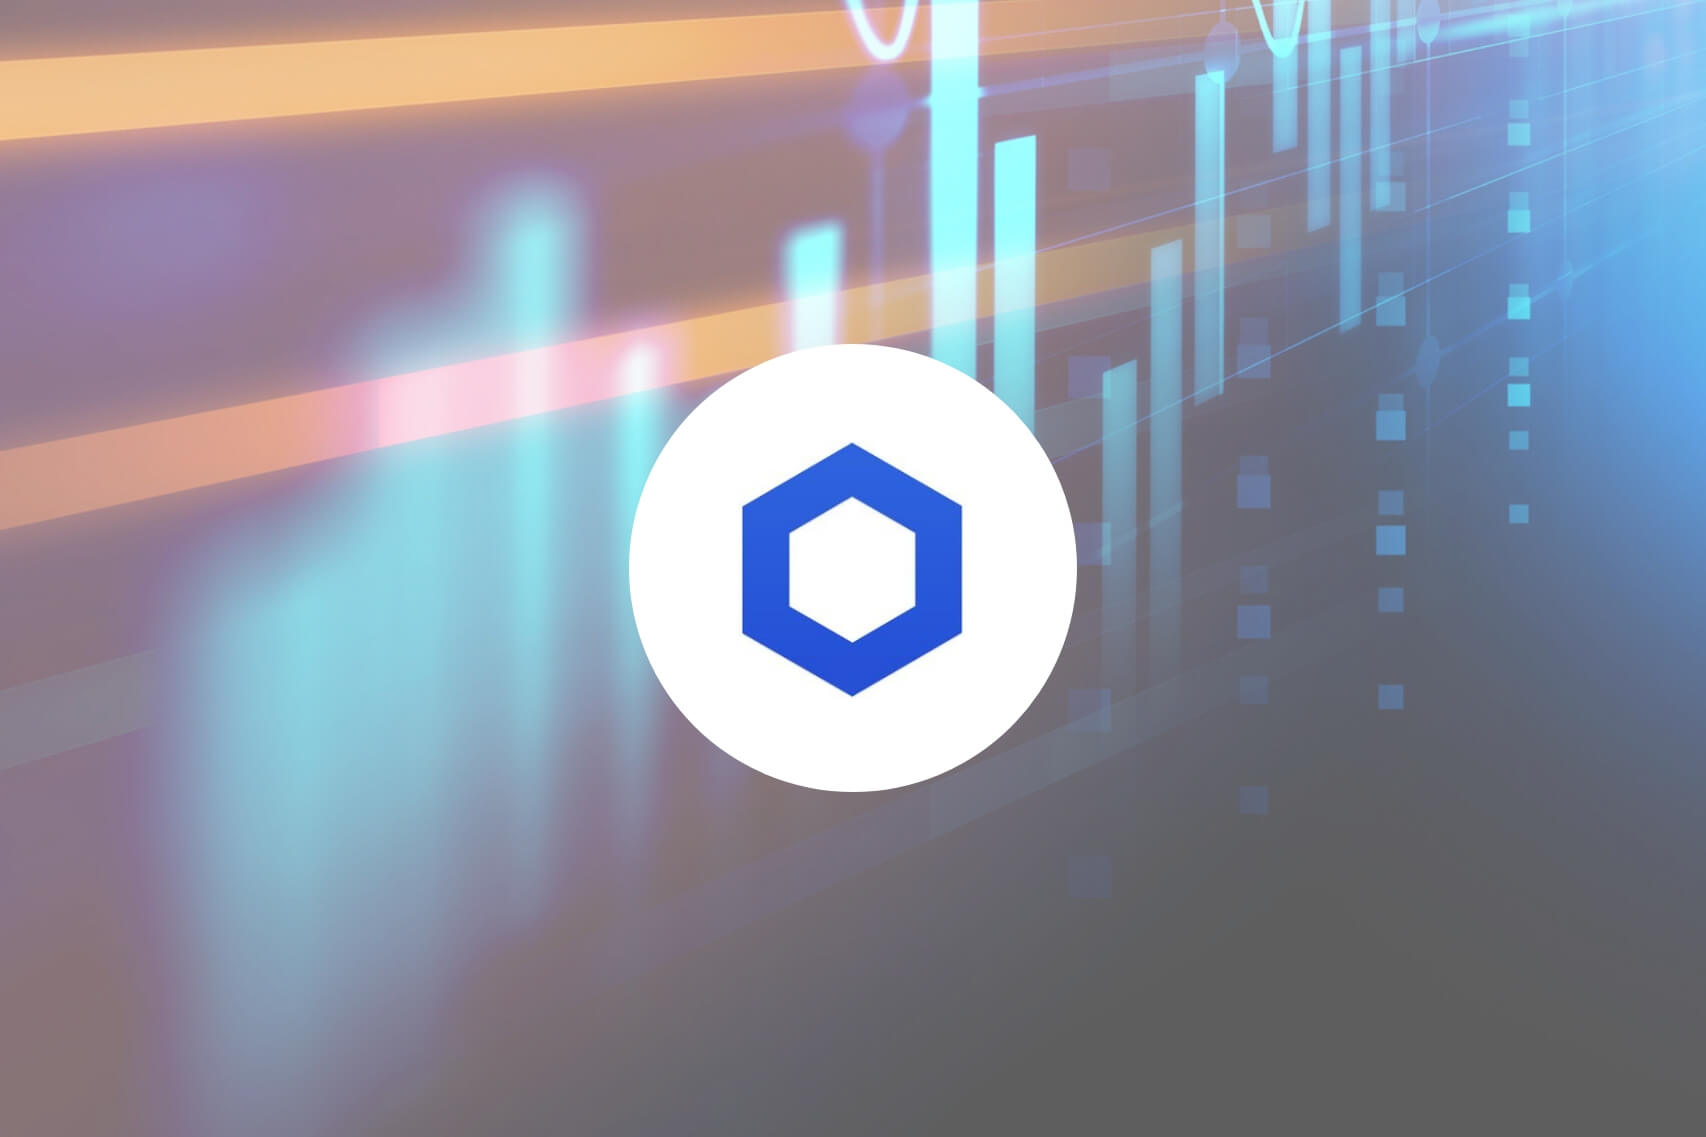 ChainLink Price Analysis: LINK/USD Has Surged Over 177% Since July